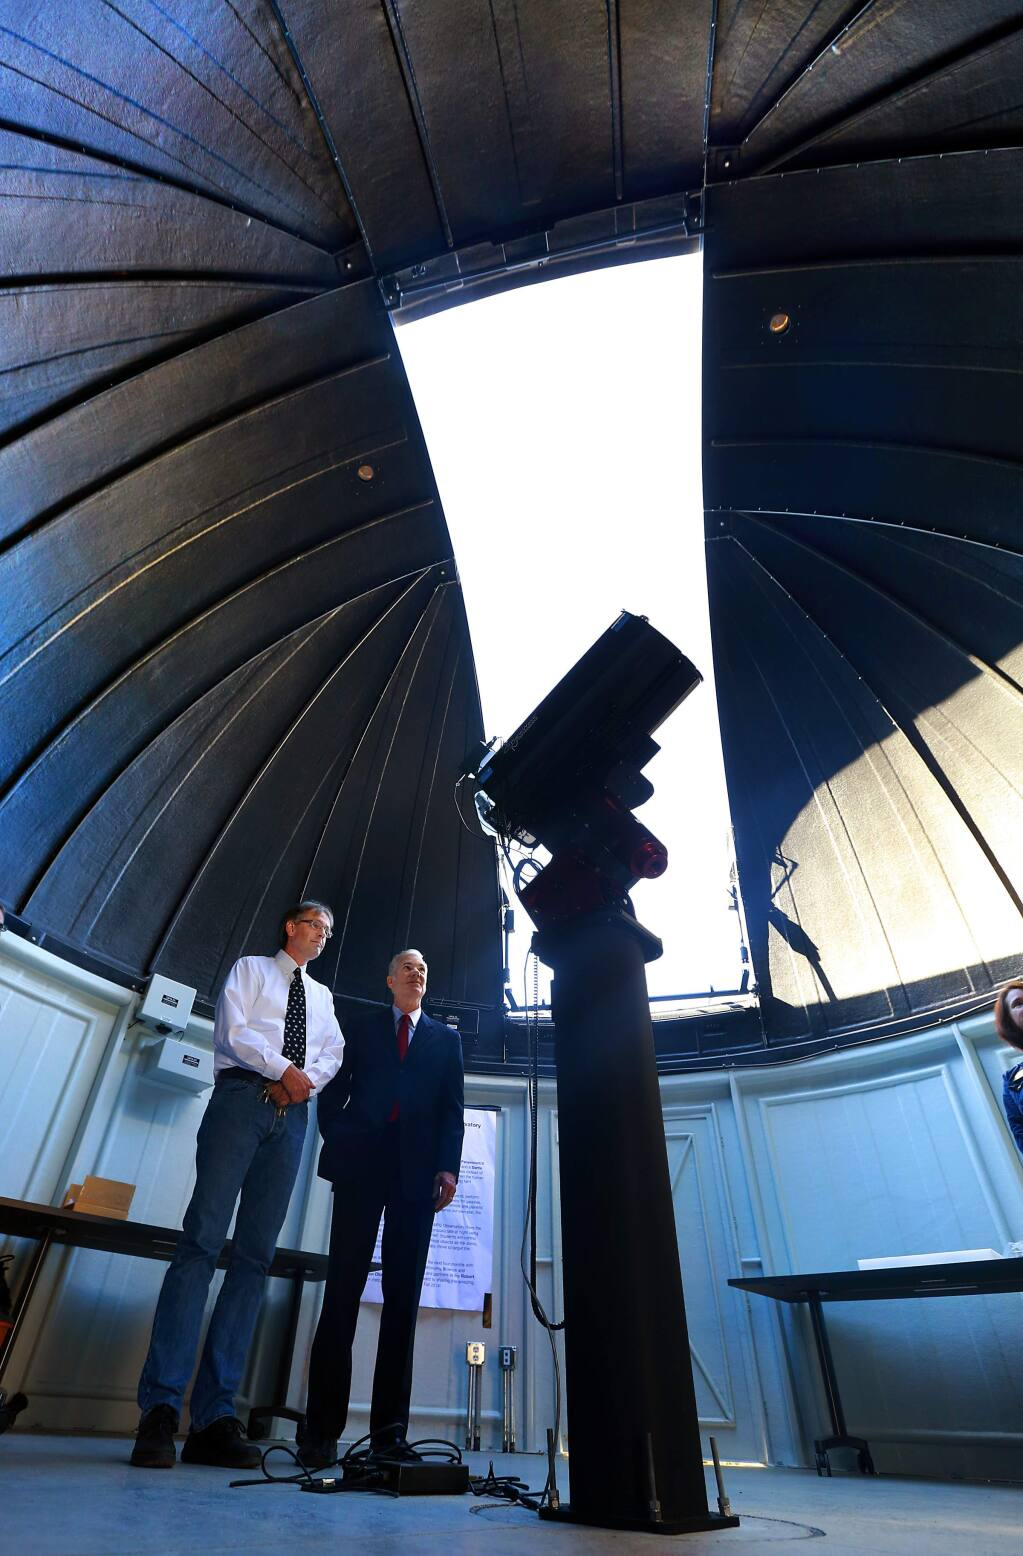 Space Science instructor Kurt Kruger, left, shows State Superintendent of Public Instruction Tom Torlakson the SPARQ Center Observatory at Piner High School on Friday, October 3, 2014.